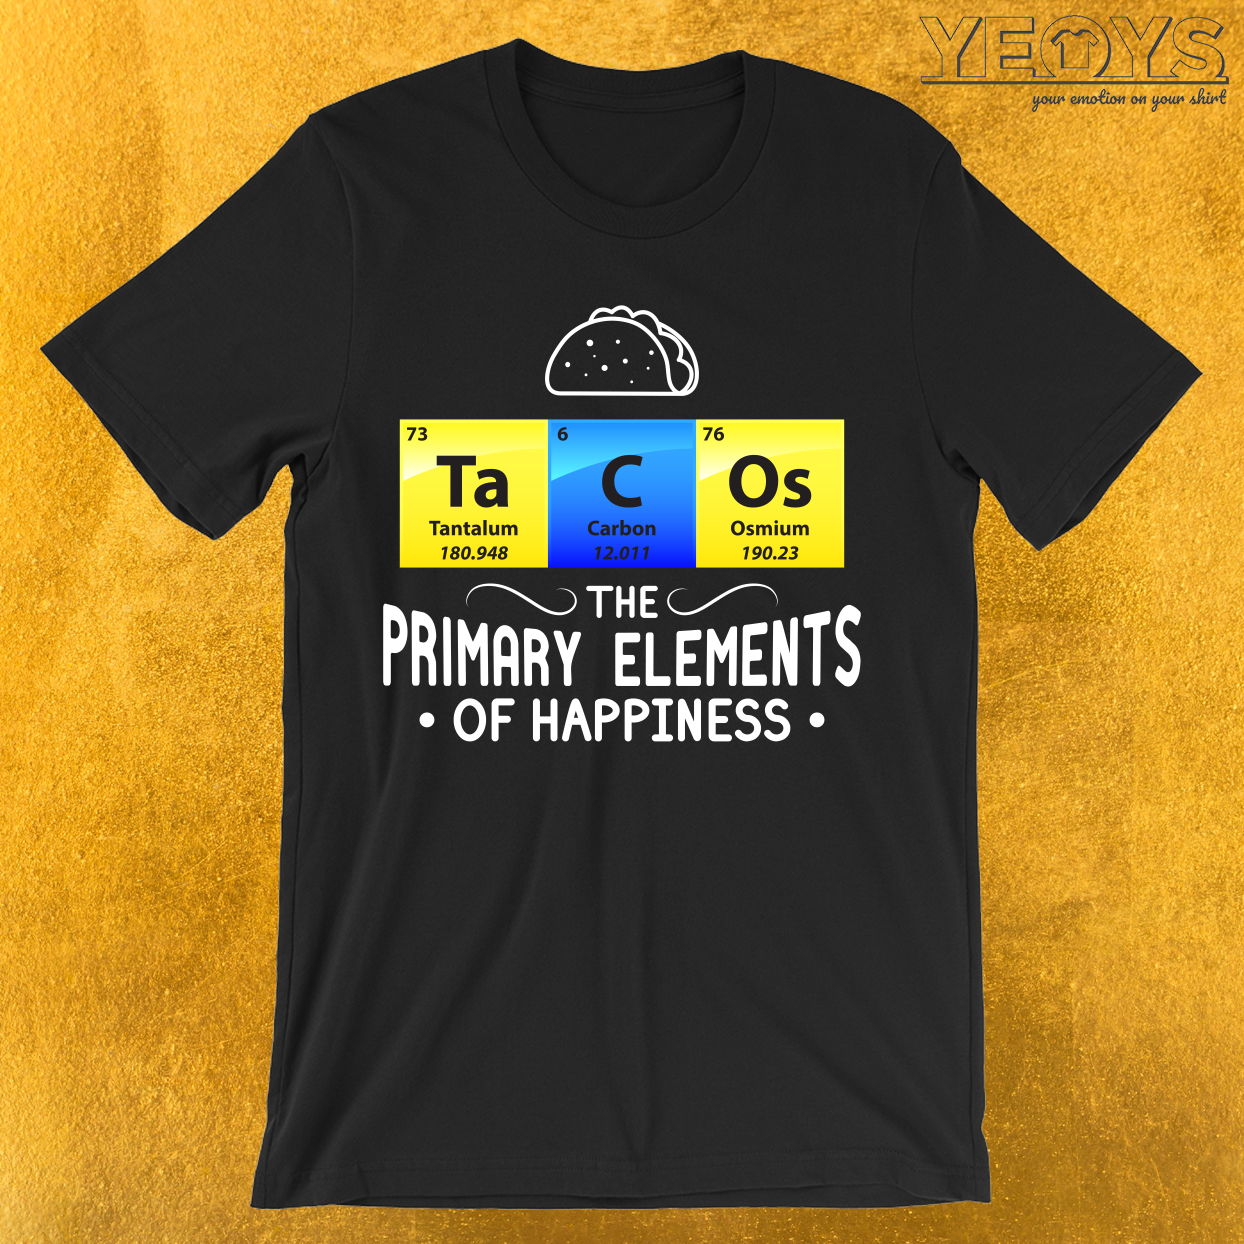 Tacos The Primary Elements Of Happiness T-Shirt